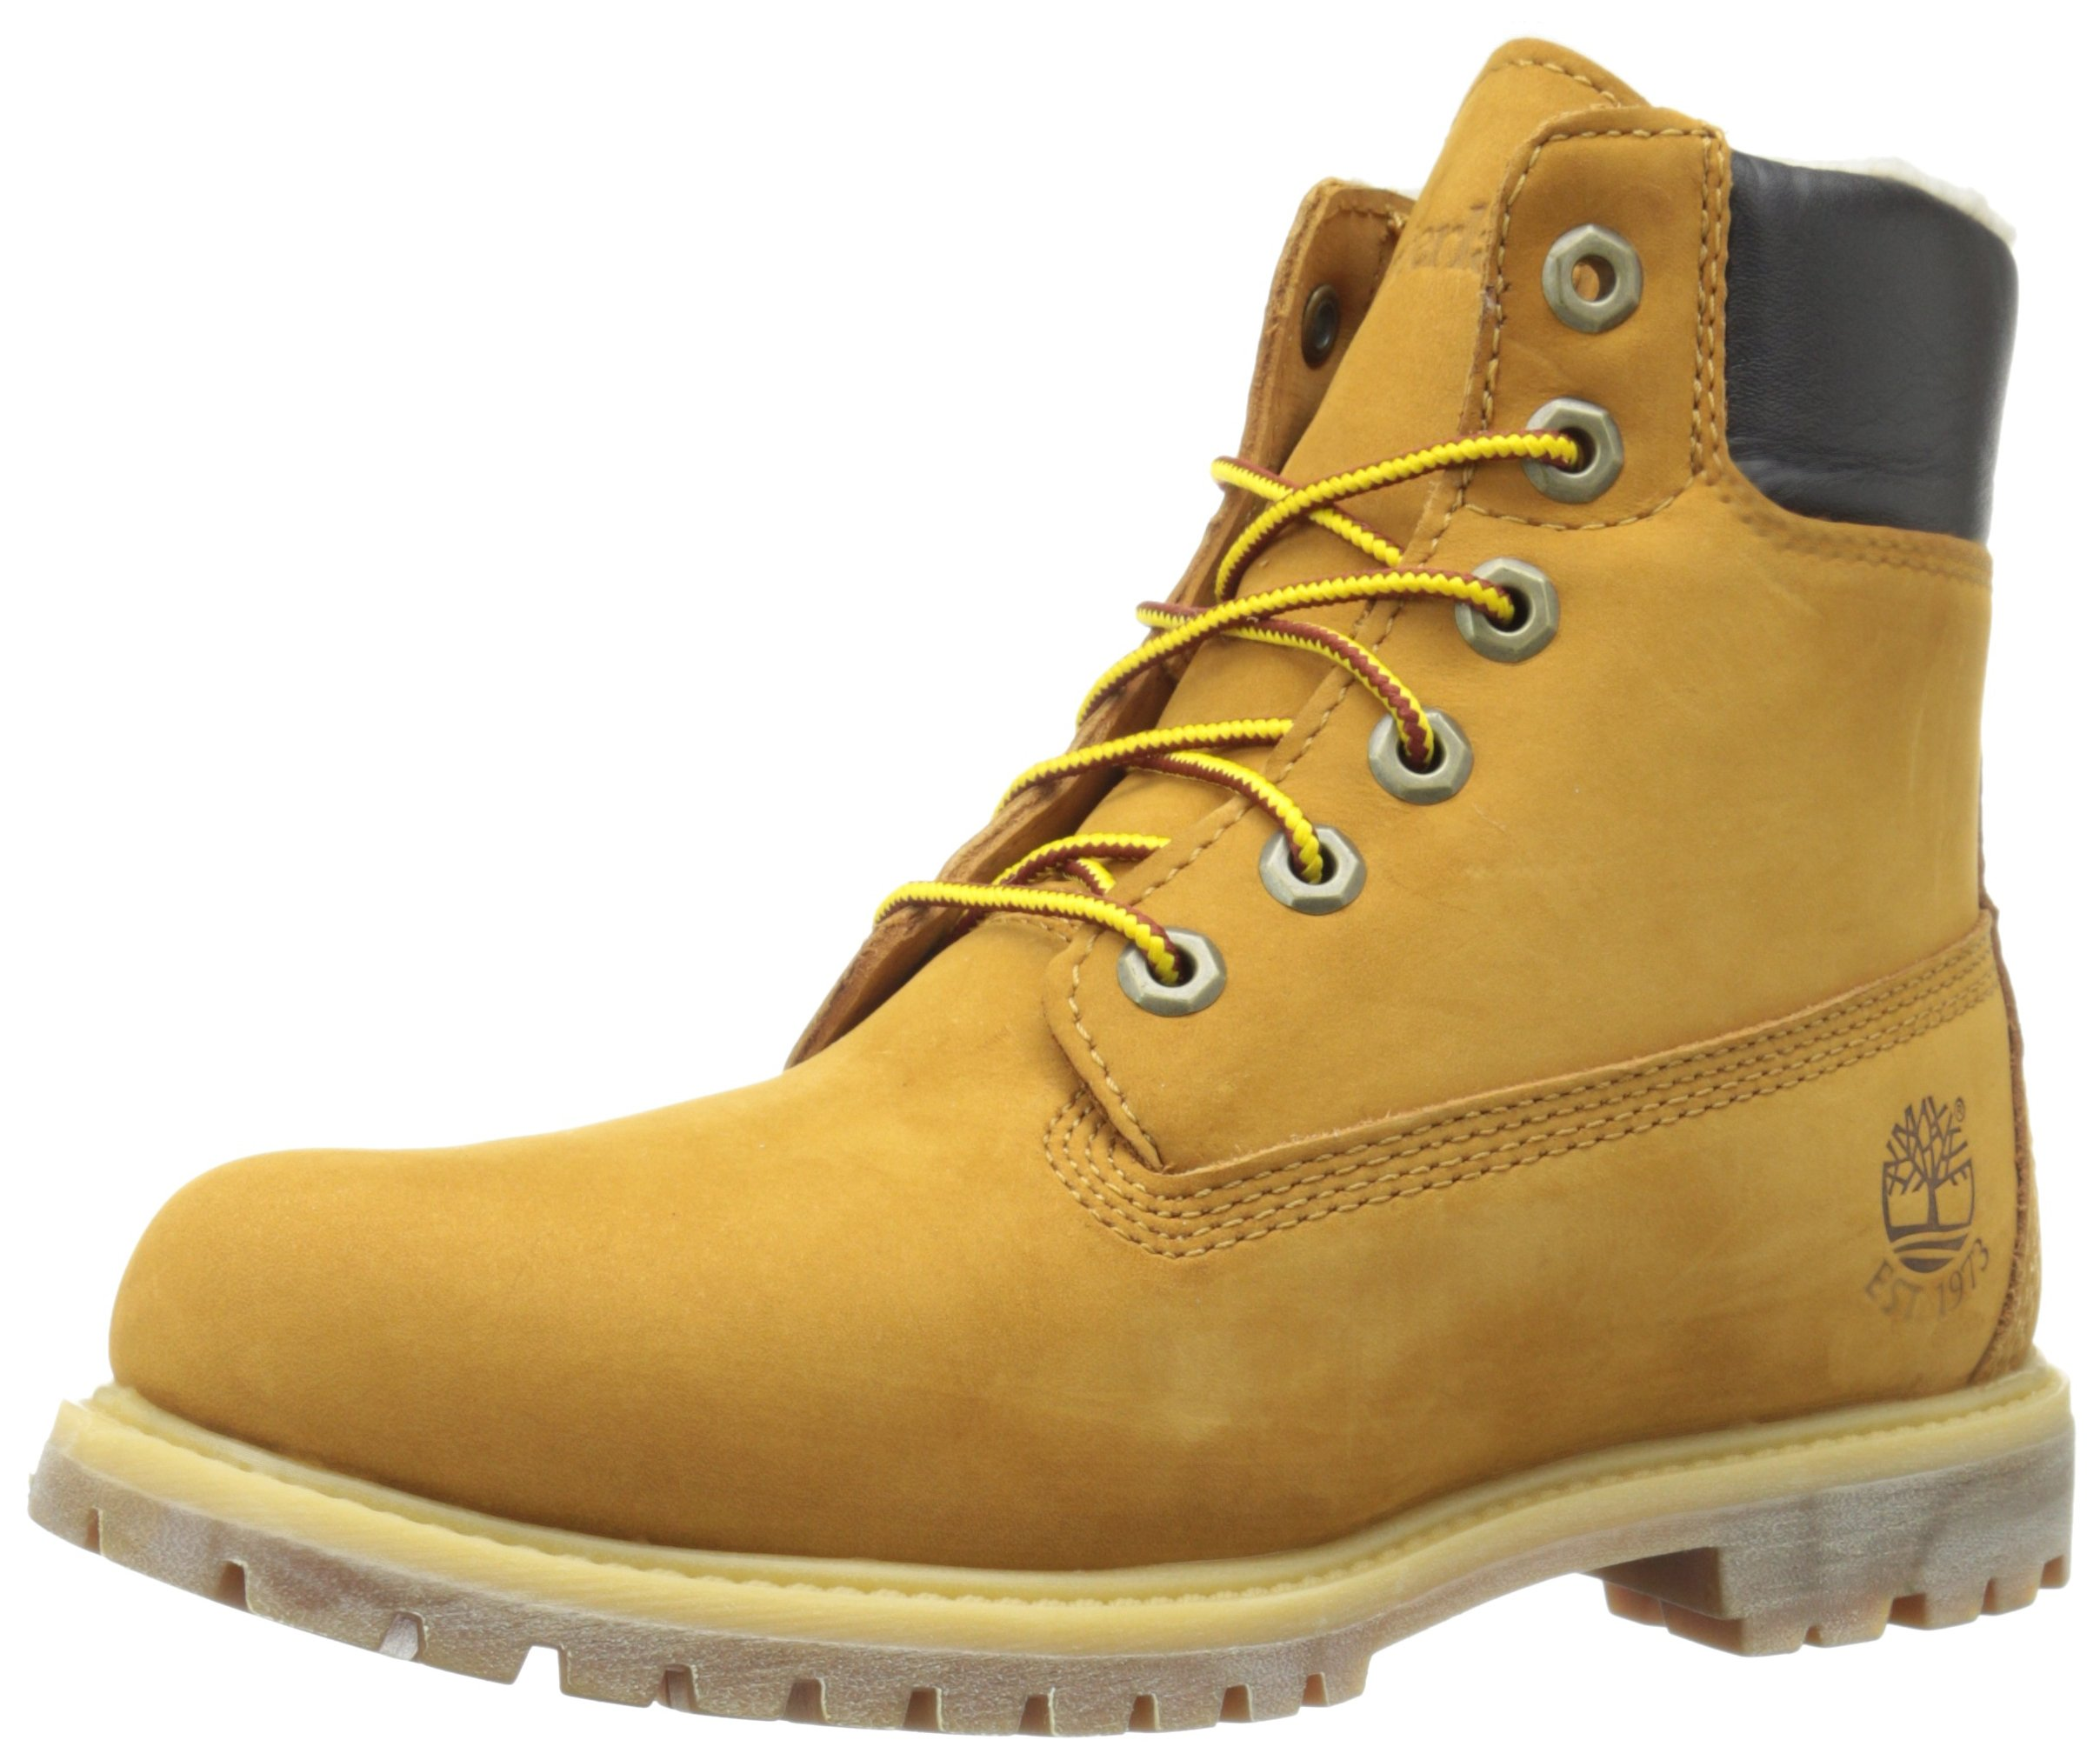 7d369ca1741b Galleon - Timberland Women s 6 Inch Premium Fleece Lined WP Winter Boot